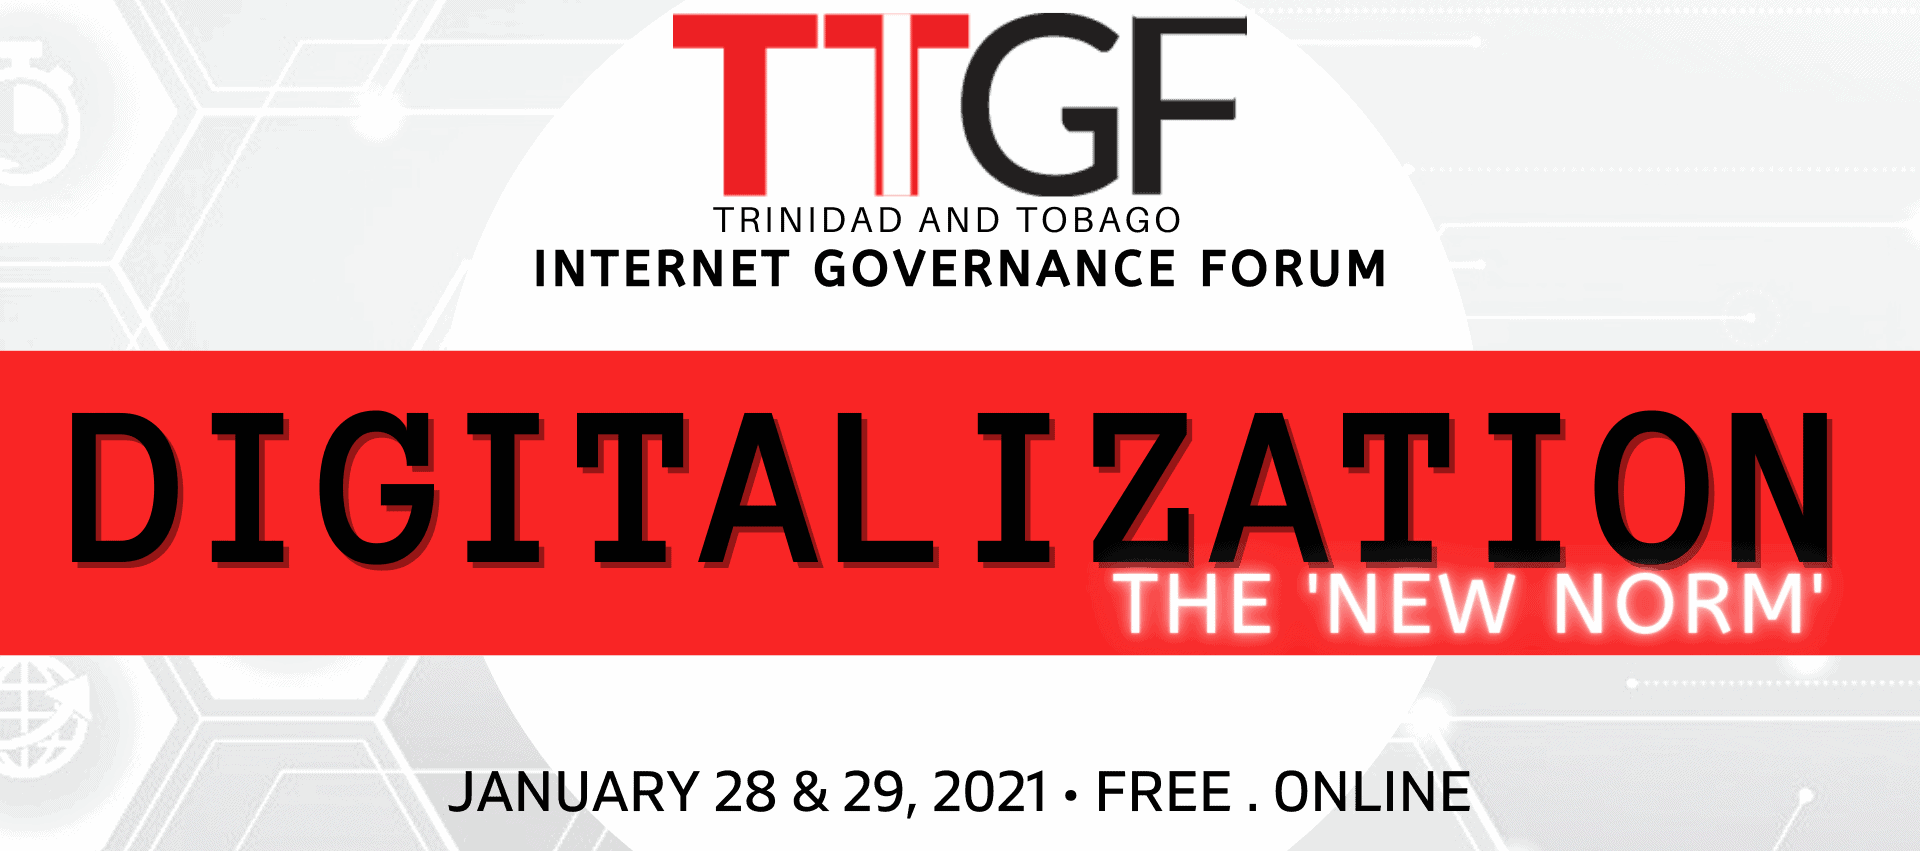 Trinidad and Tobago Internet Governace Forum 2021